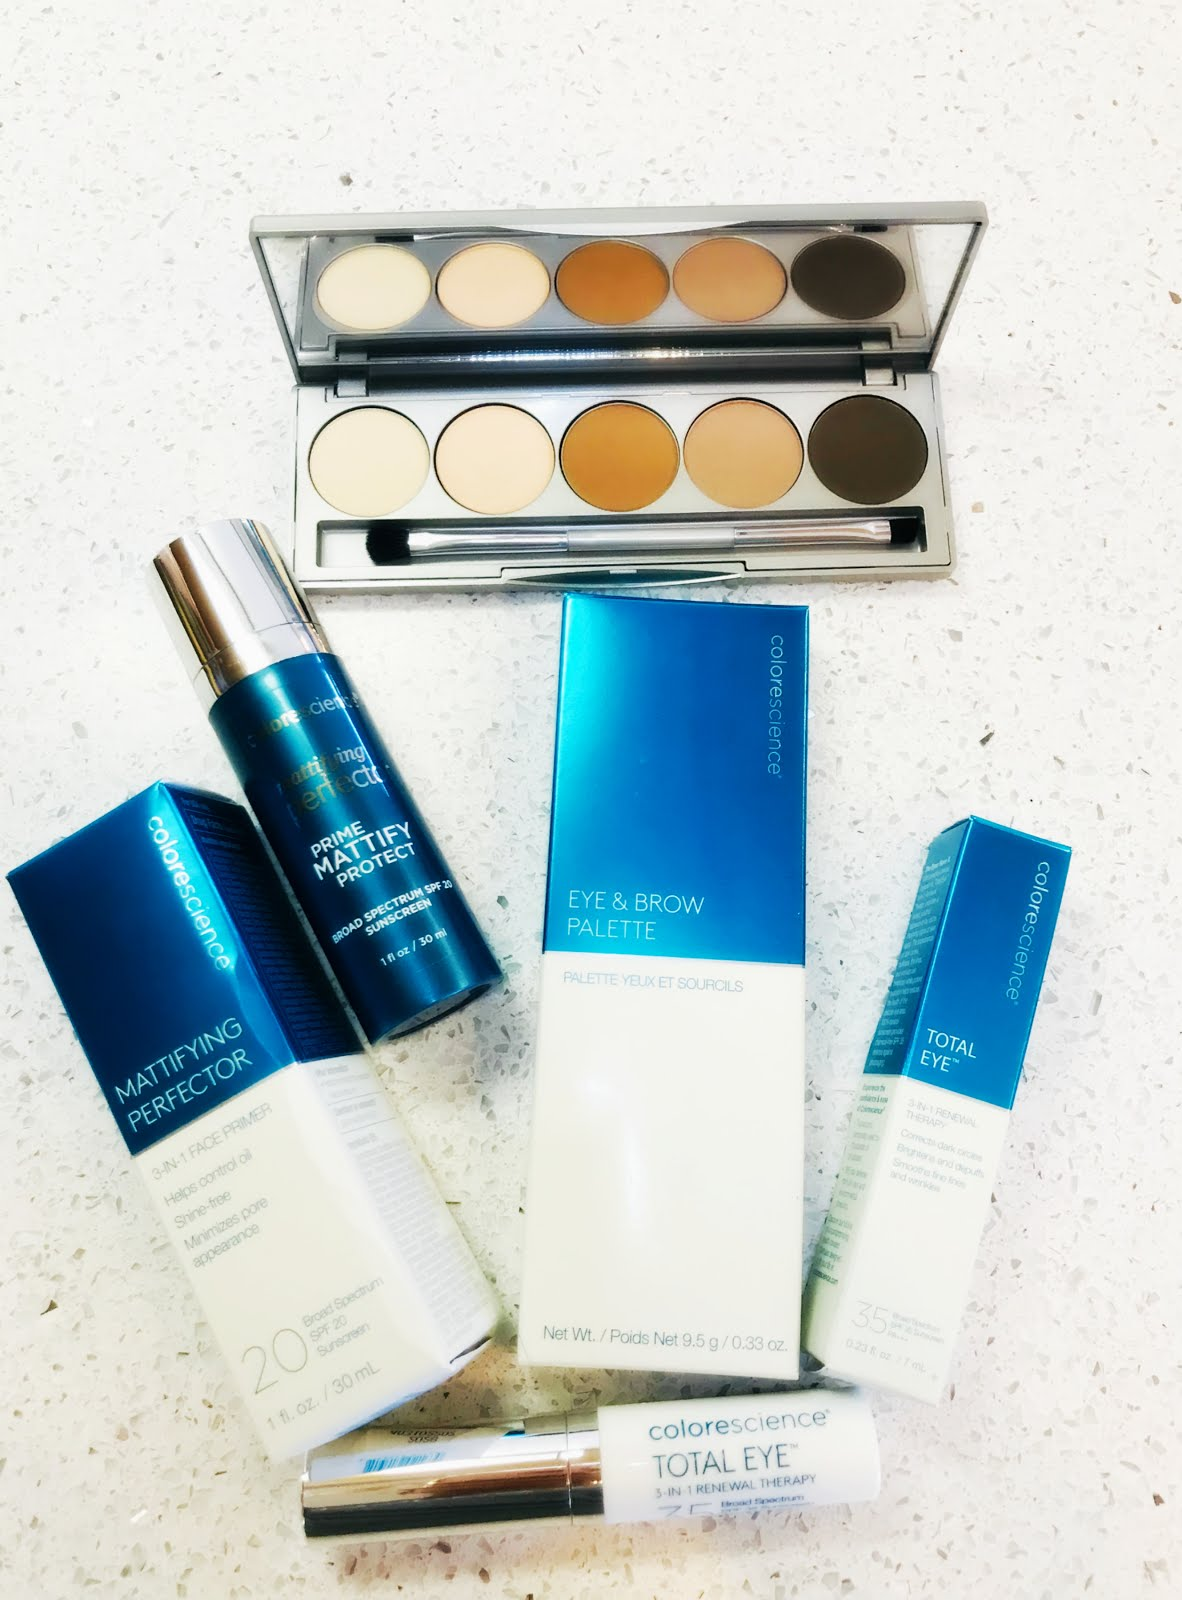 Must Haves from Colorescience!